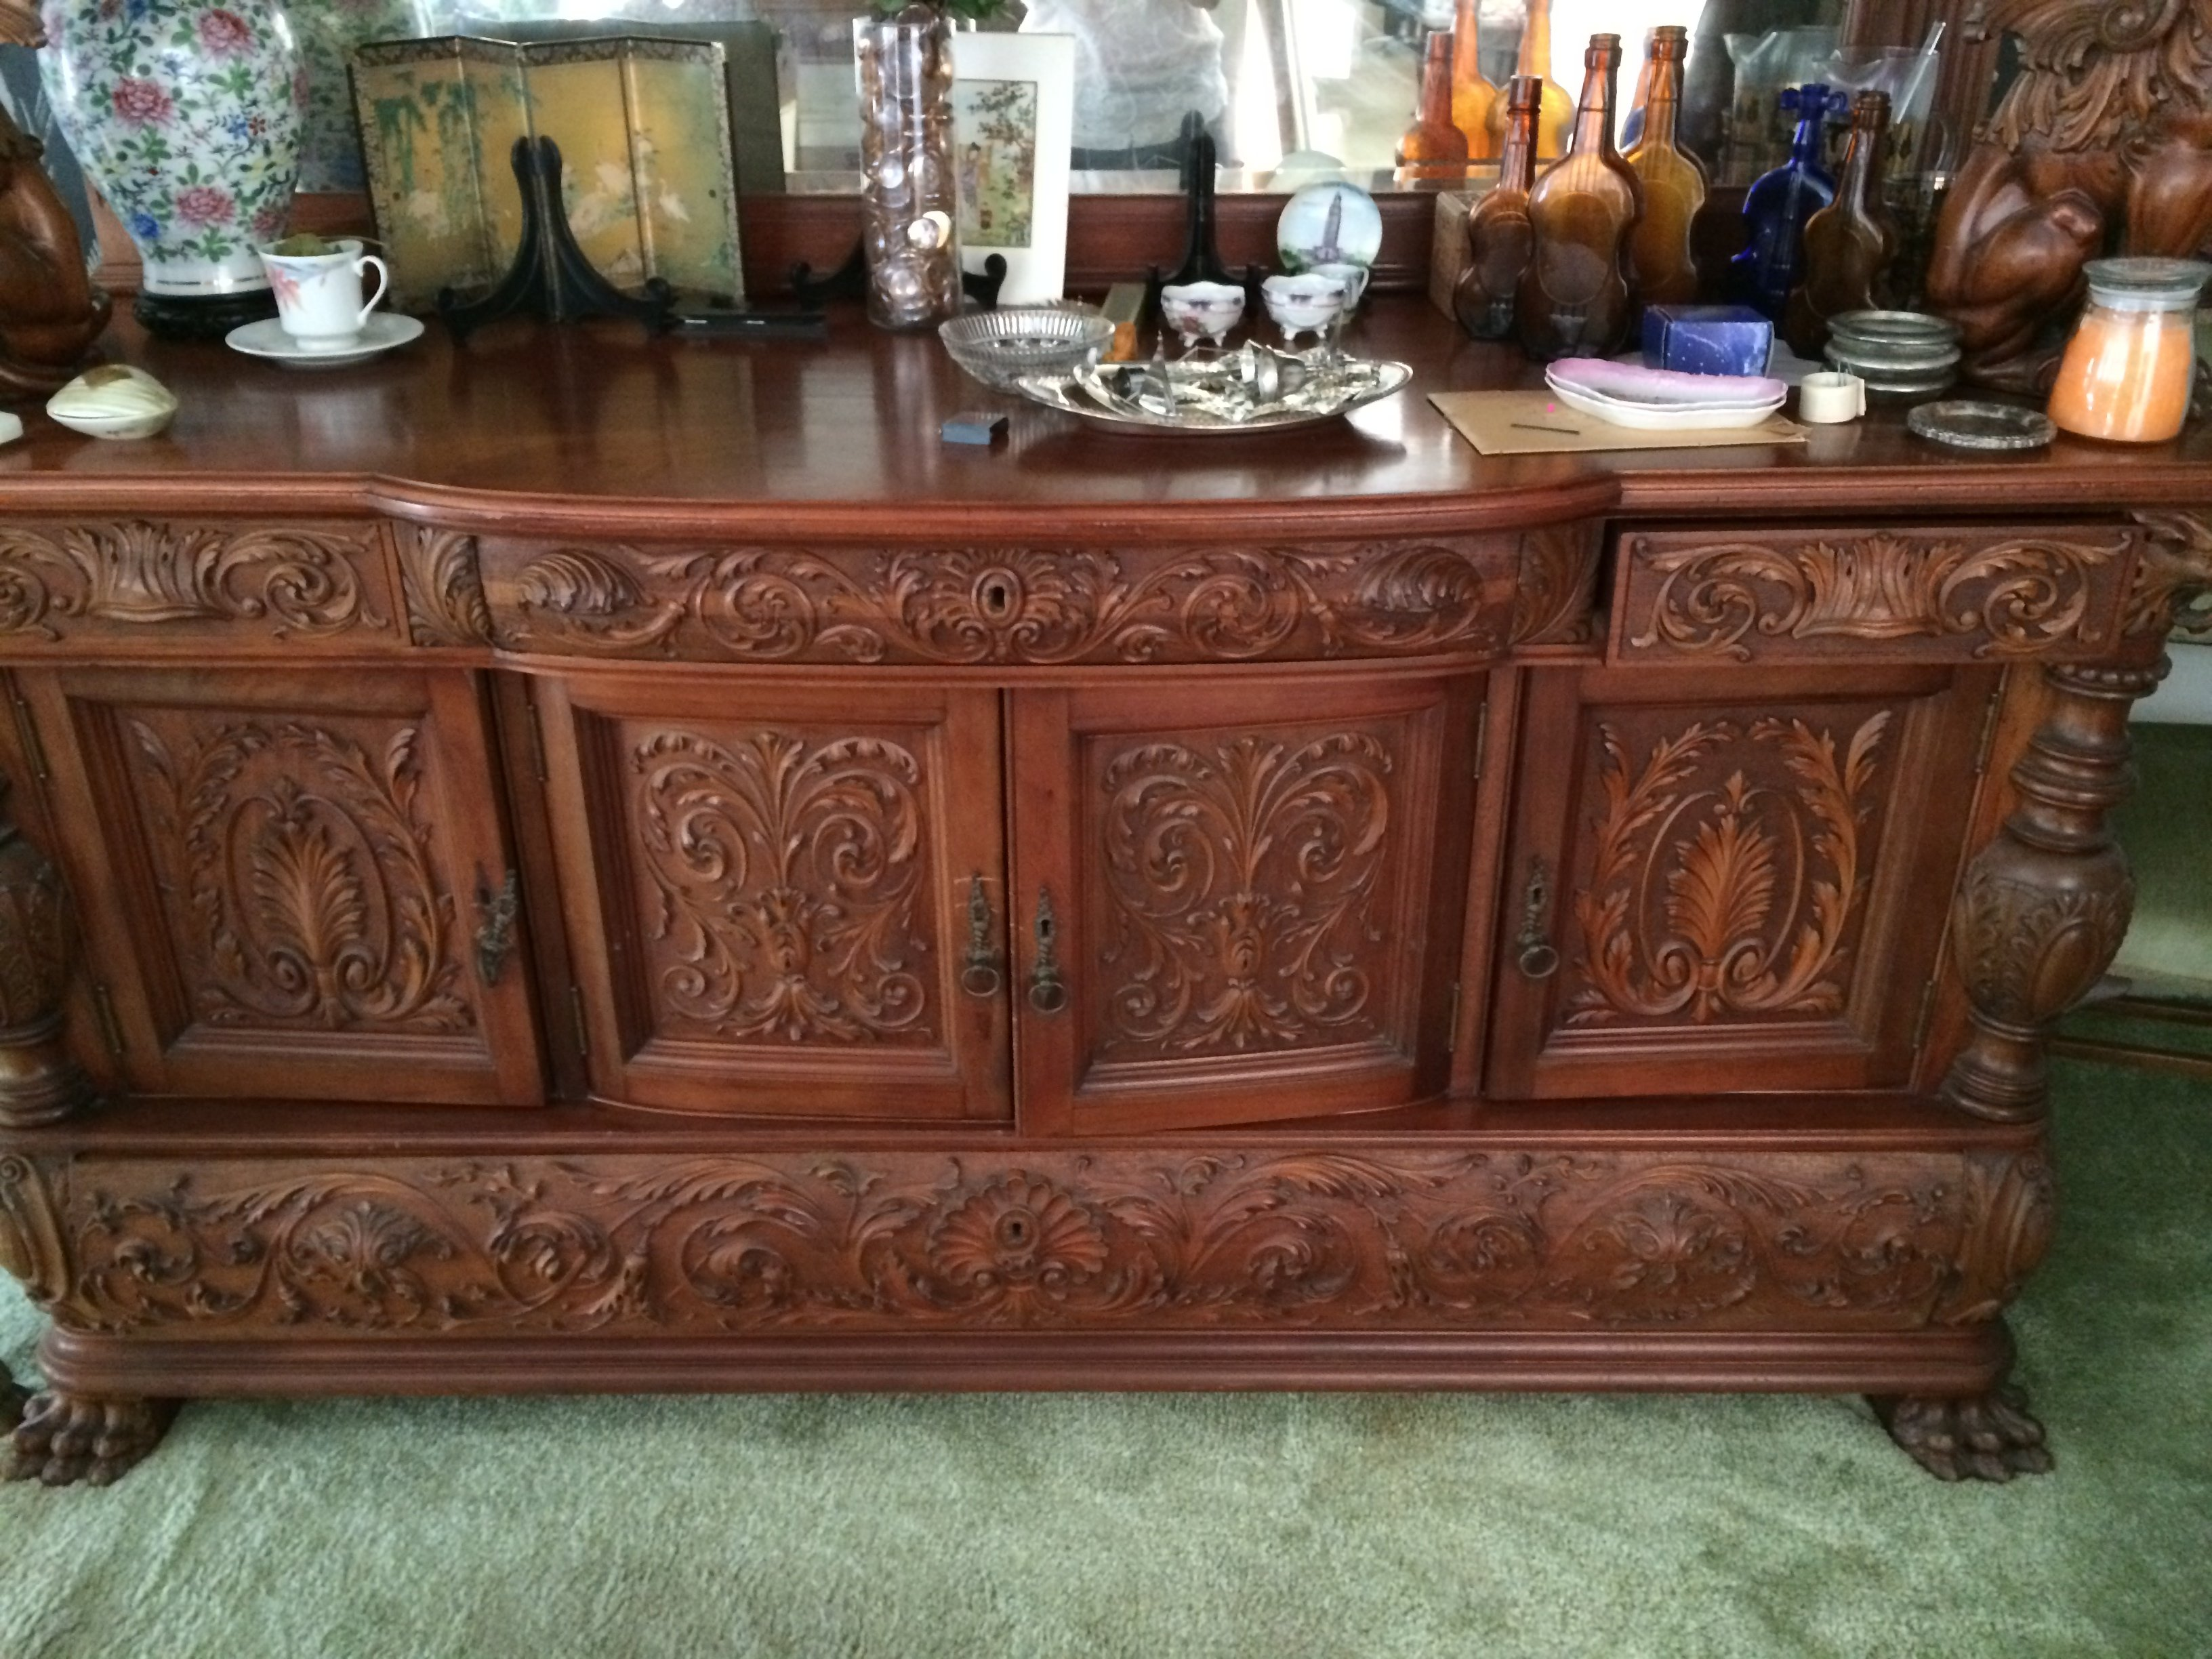 Have A Gorgeous Antique Dining Room Table, Chairs, Buffet, And Curio  Cabinet.. Wanting Information About It And A Value